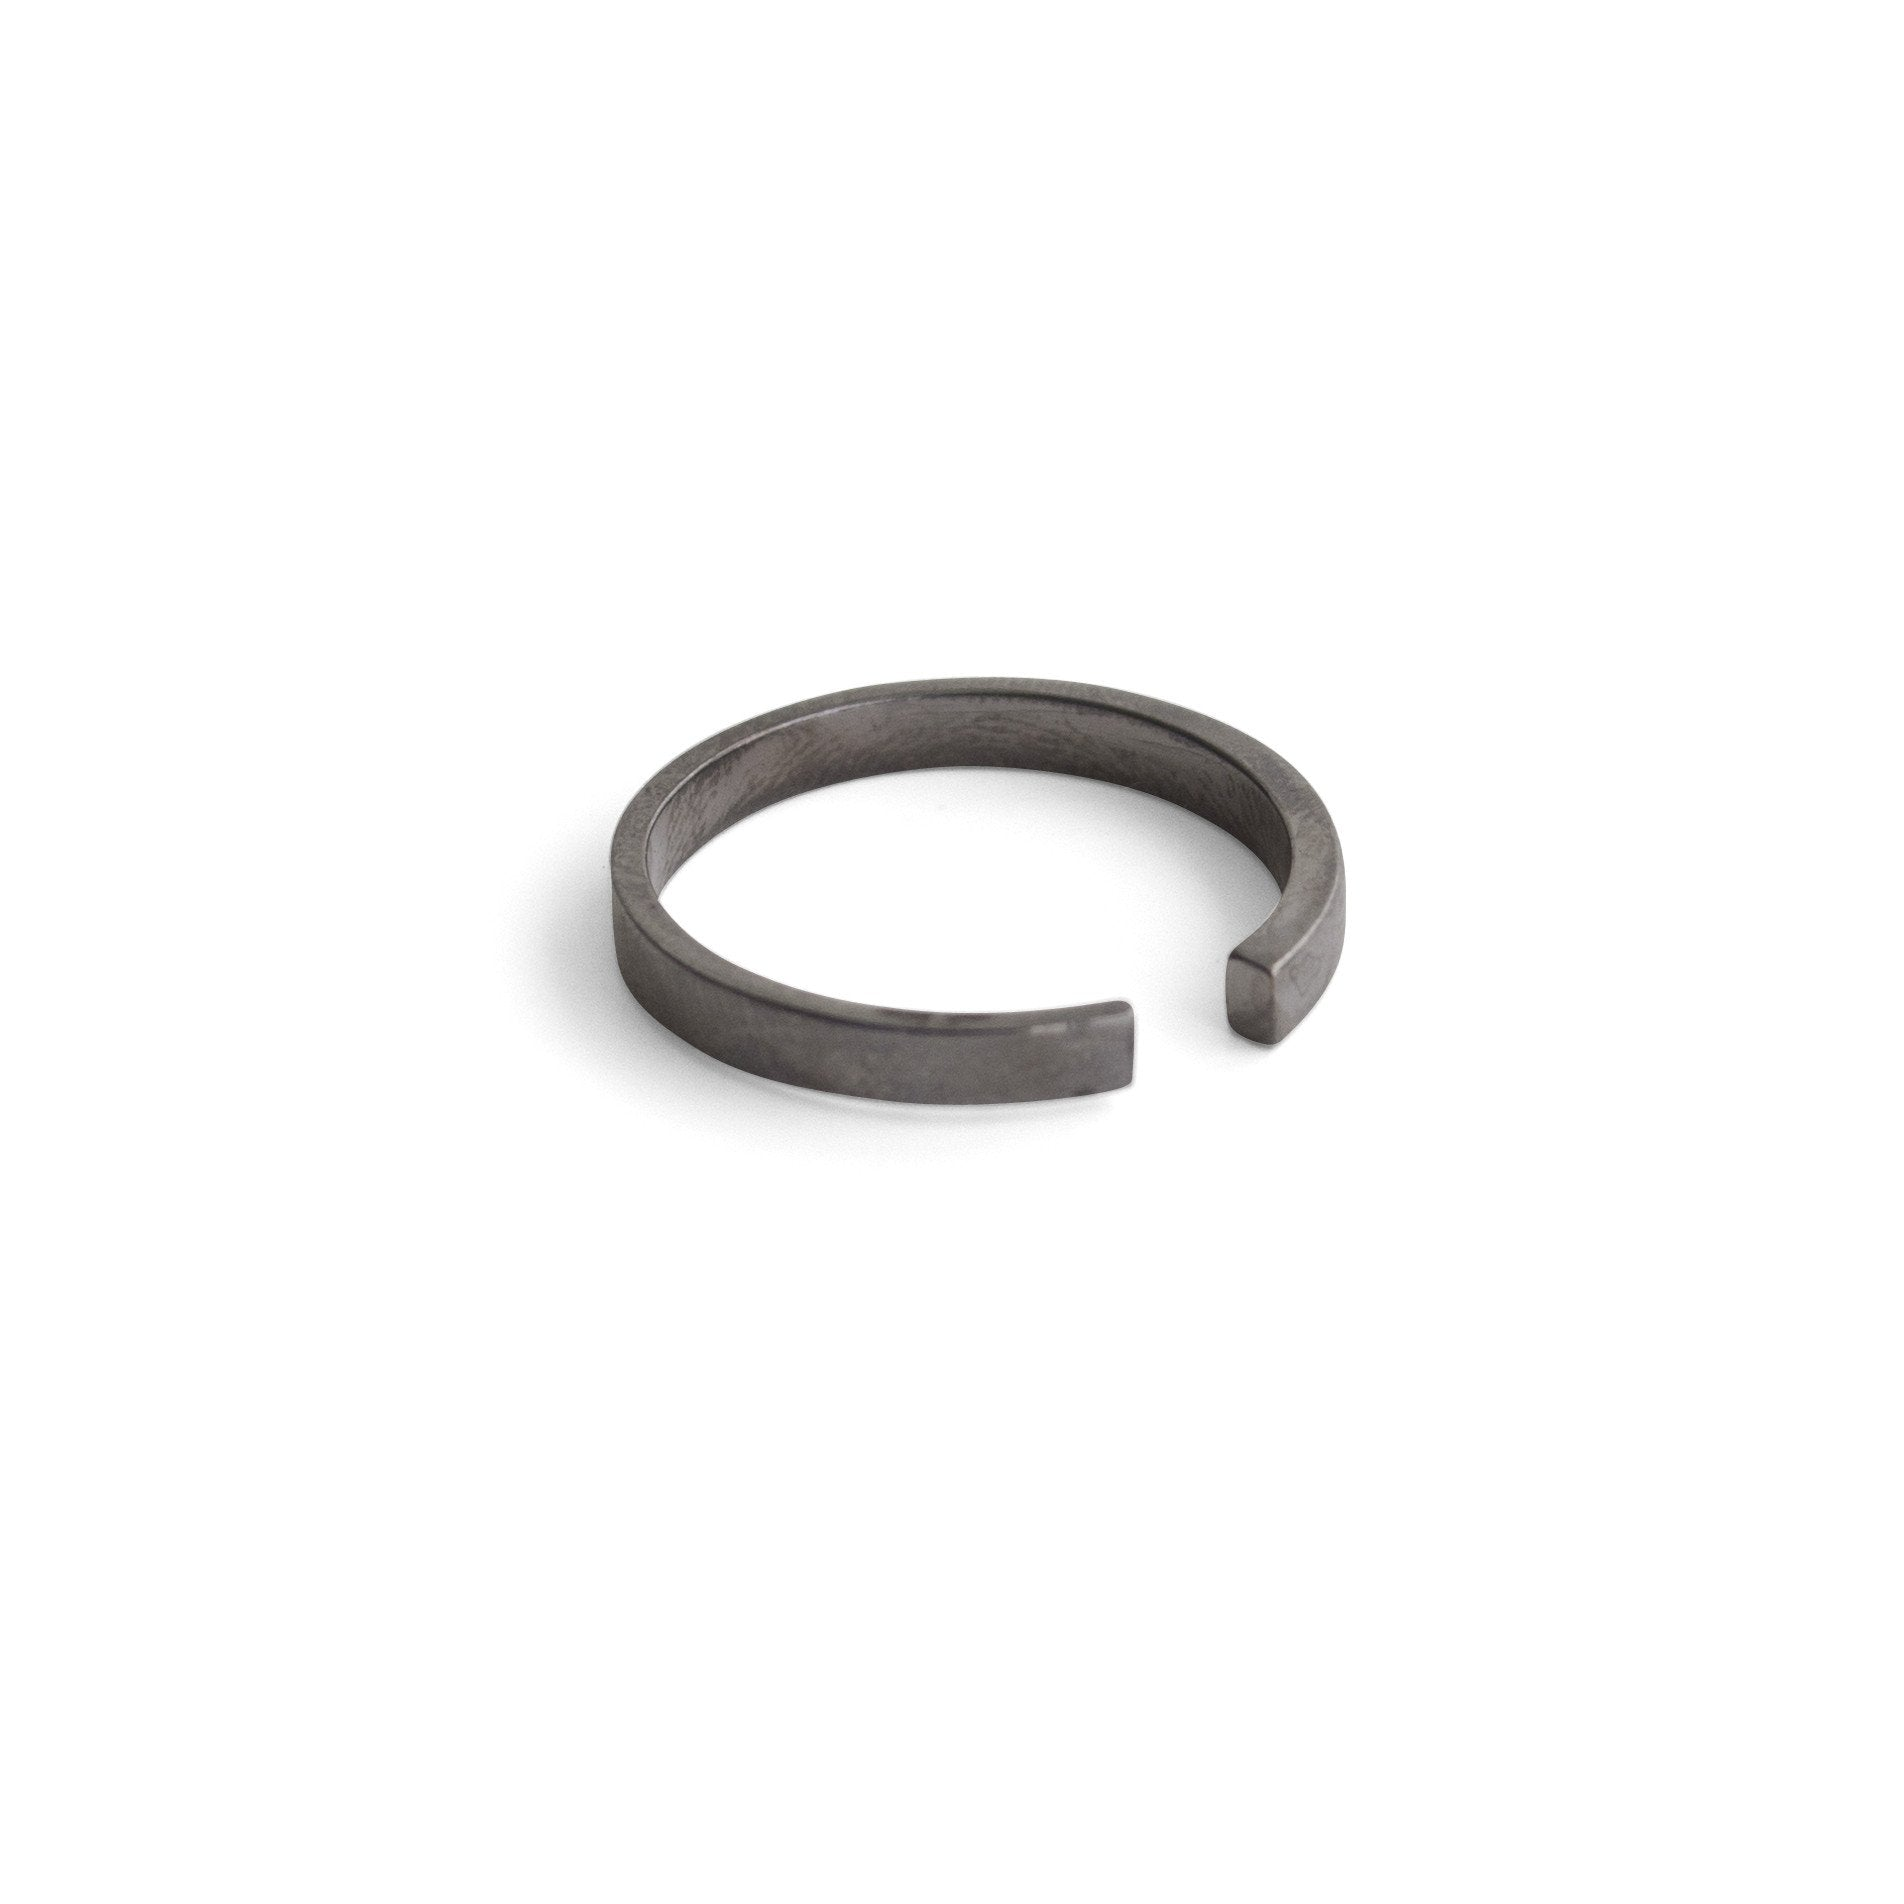 sterling silver plated in black rhodium / 7 tapered stake band